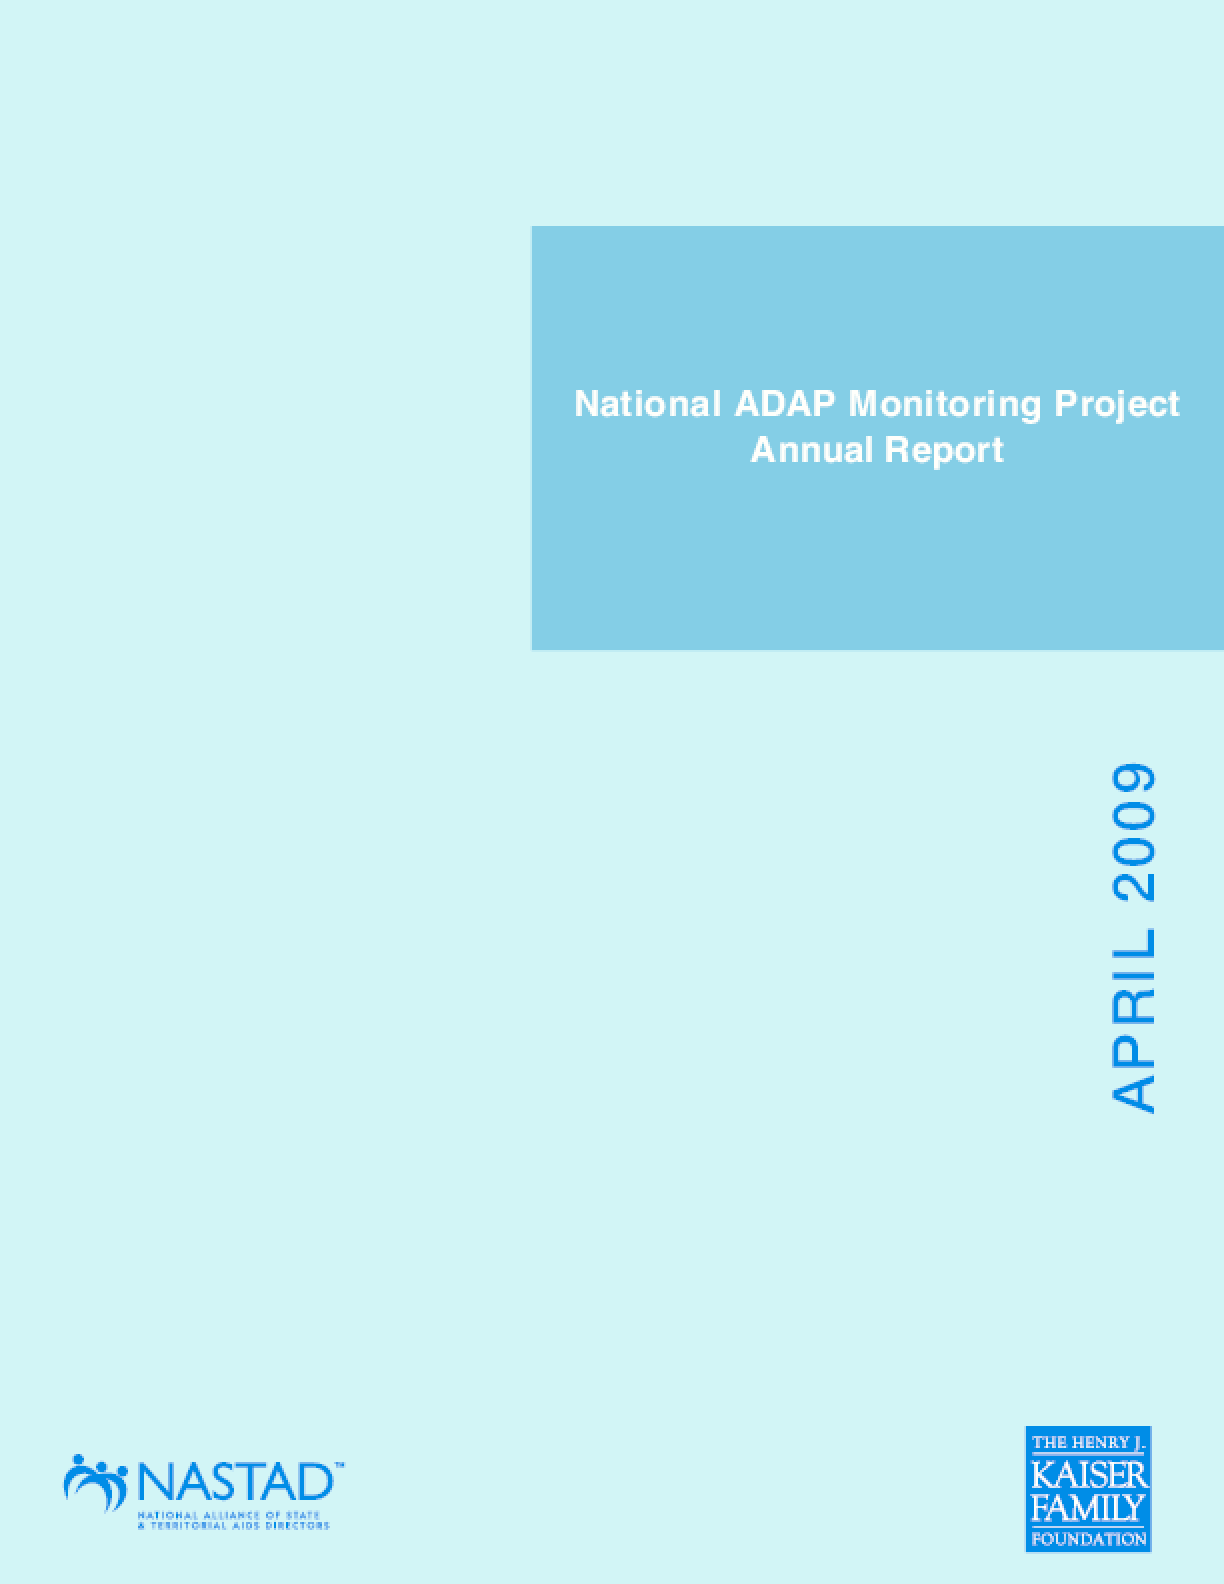 Henry J. Kaiser Family Foundation; National Alliance of State and Territorial AIDS Directors - National ADAP Monitoring Project Annual Report